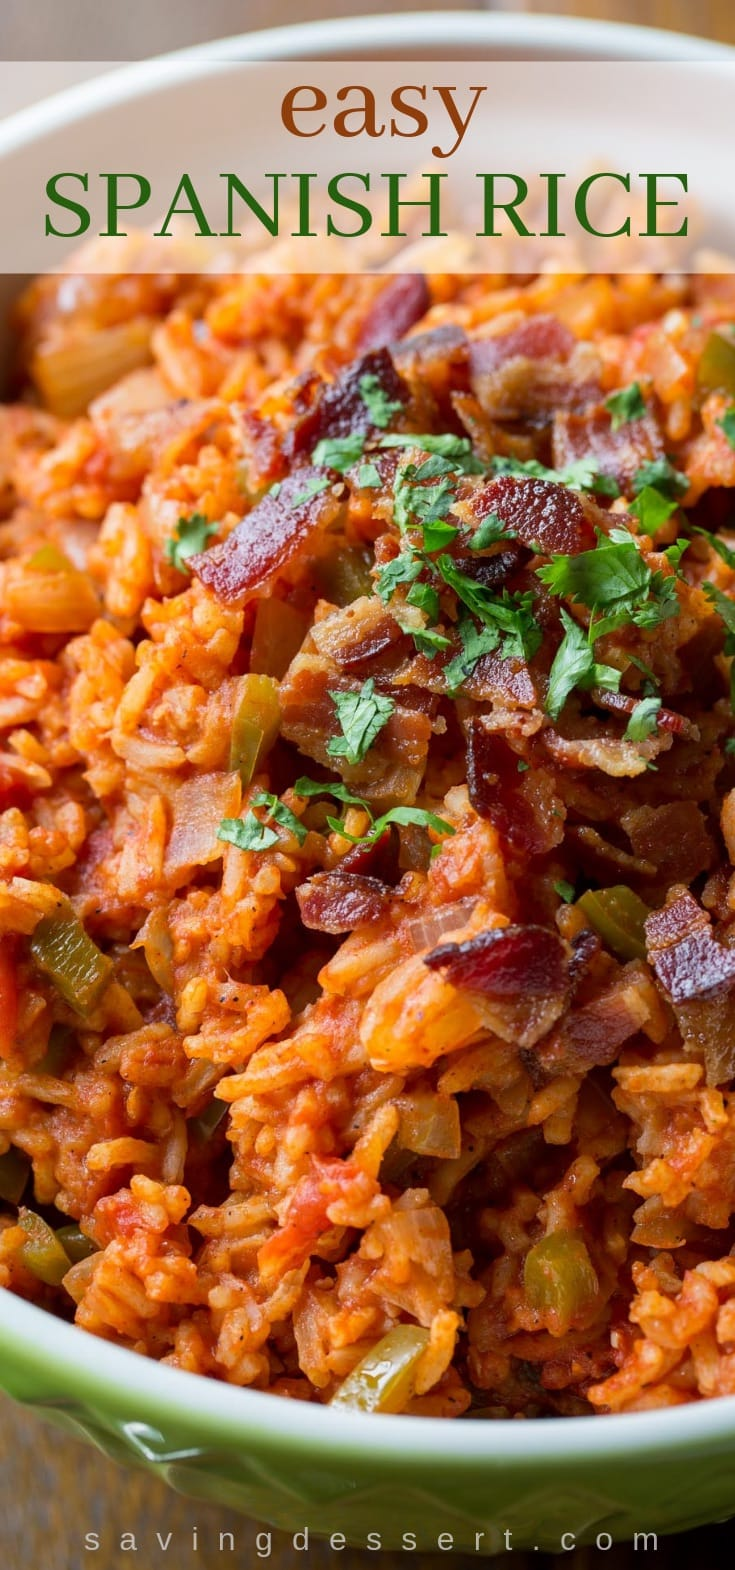 Easy Spanish Rice Recipe ~ Sweet onion and green bell pepper compliment the tomatoes and spices in this tasty Mexican rice dish. #mexicanrice, #spanishrice, #cincodemayo #rice #tomatoesandrice #mexicanside #easyspanishrice